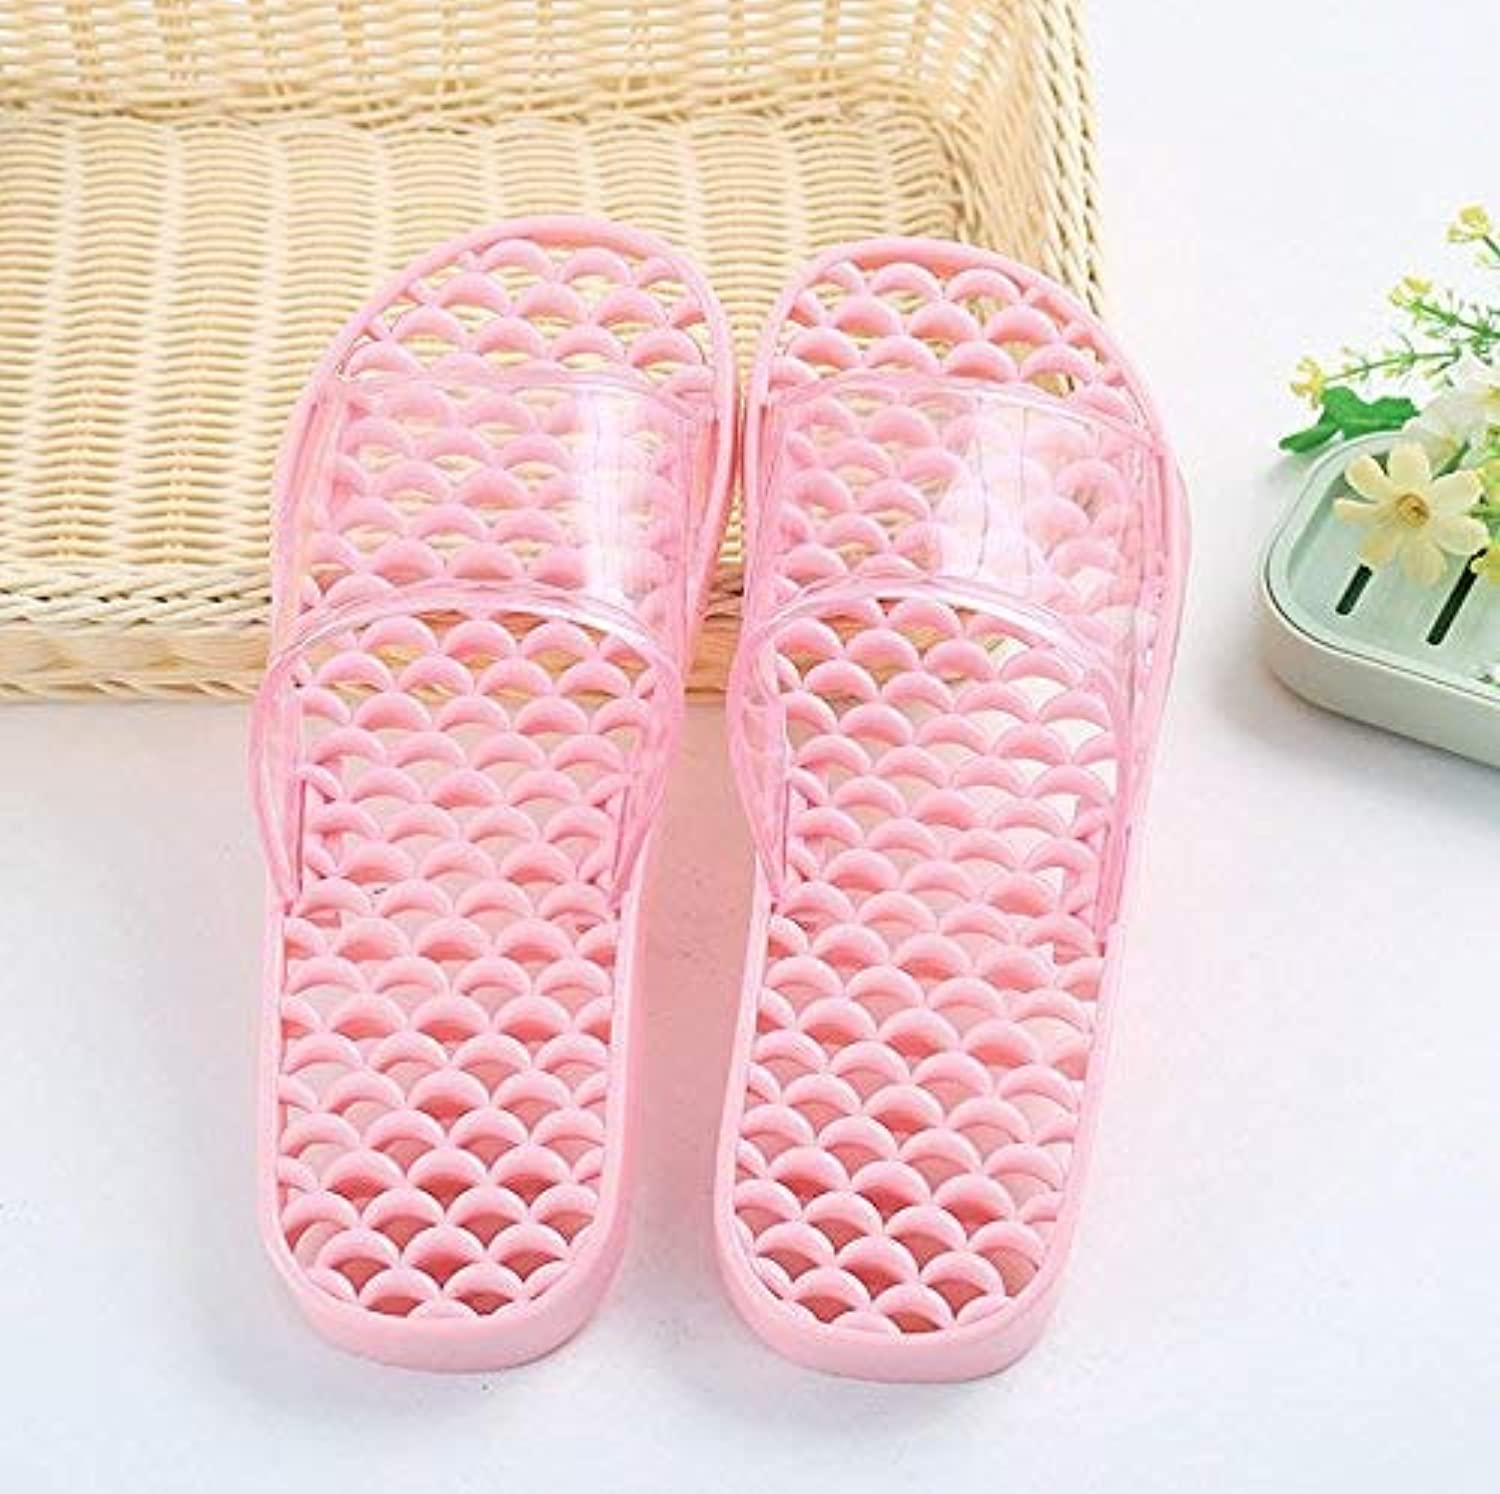 GouuoHi Womens Slippers Ladies Home Bathroom Slippers Massage Slippers Hollow Anti-Sliding PVC Slippers Light Purple Green Pink bluee